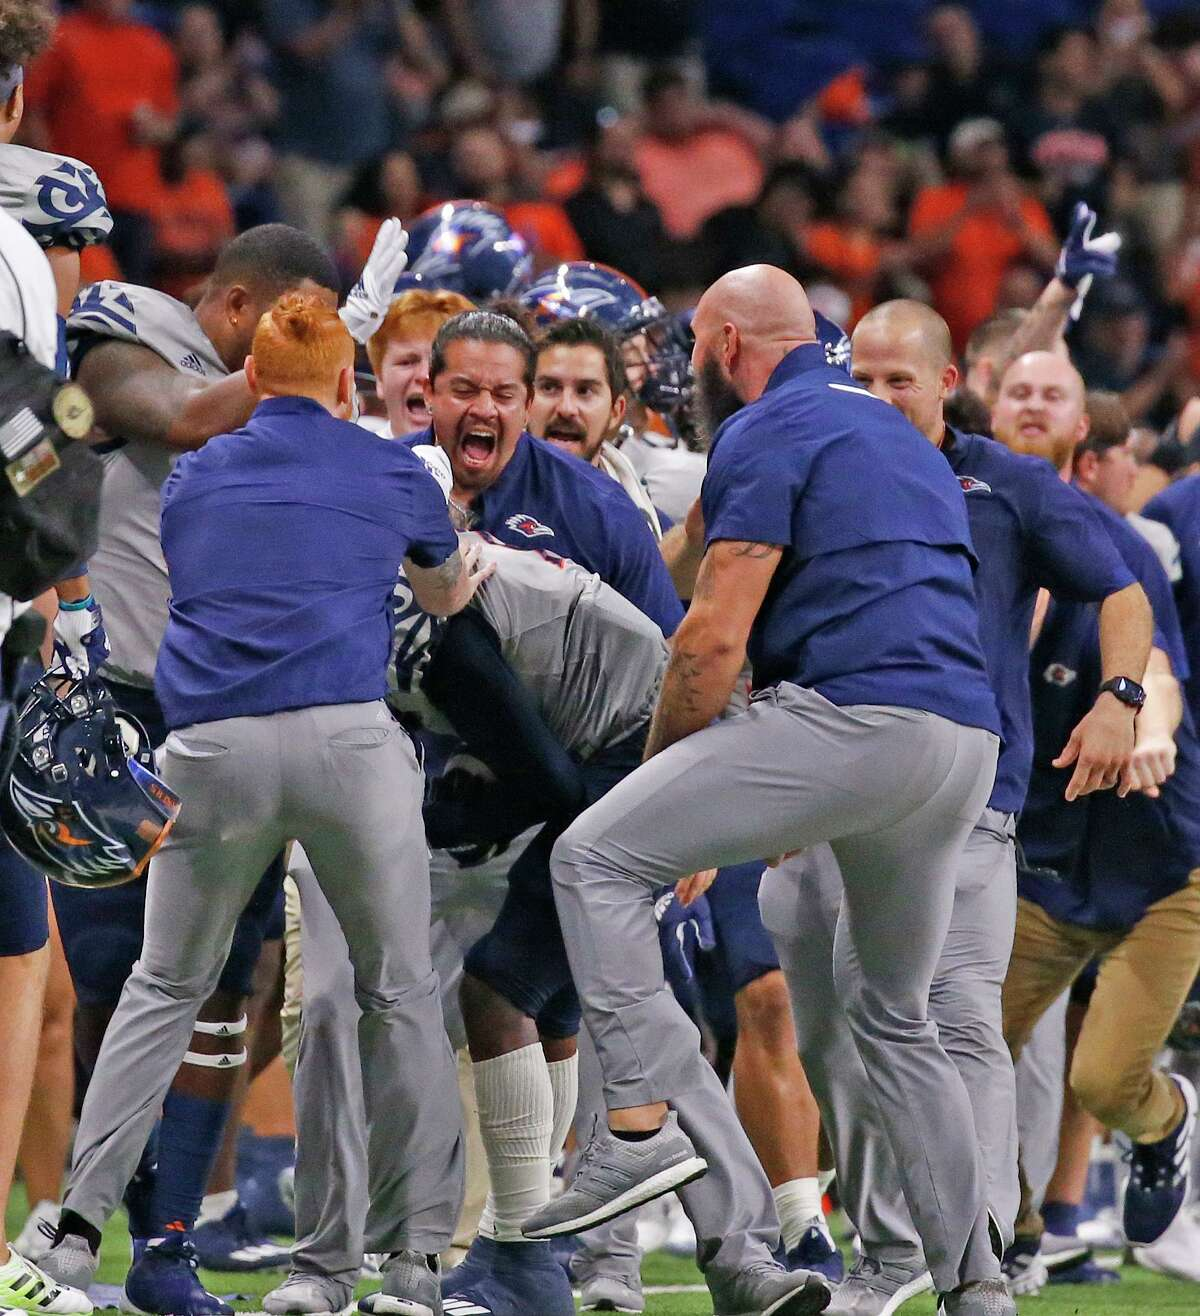 UTSA Dadrian Taylor (7) is surrounded after a successful kick-off against UNLV. UTSA defeats UNLV 24-17 on Saturday, Oct. 2, 2021.